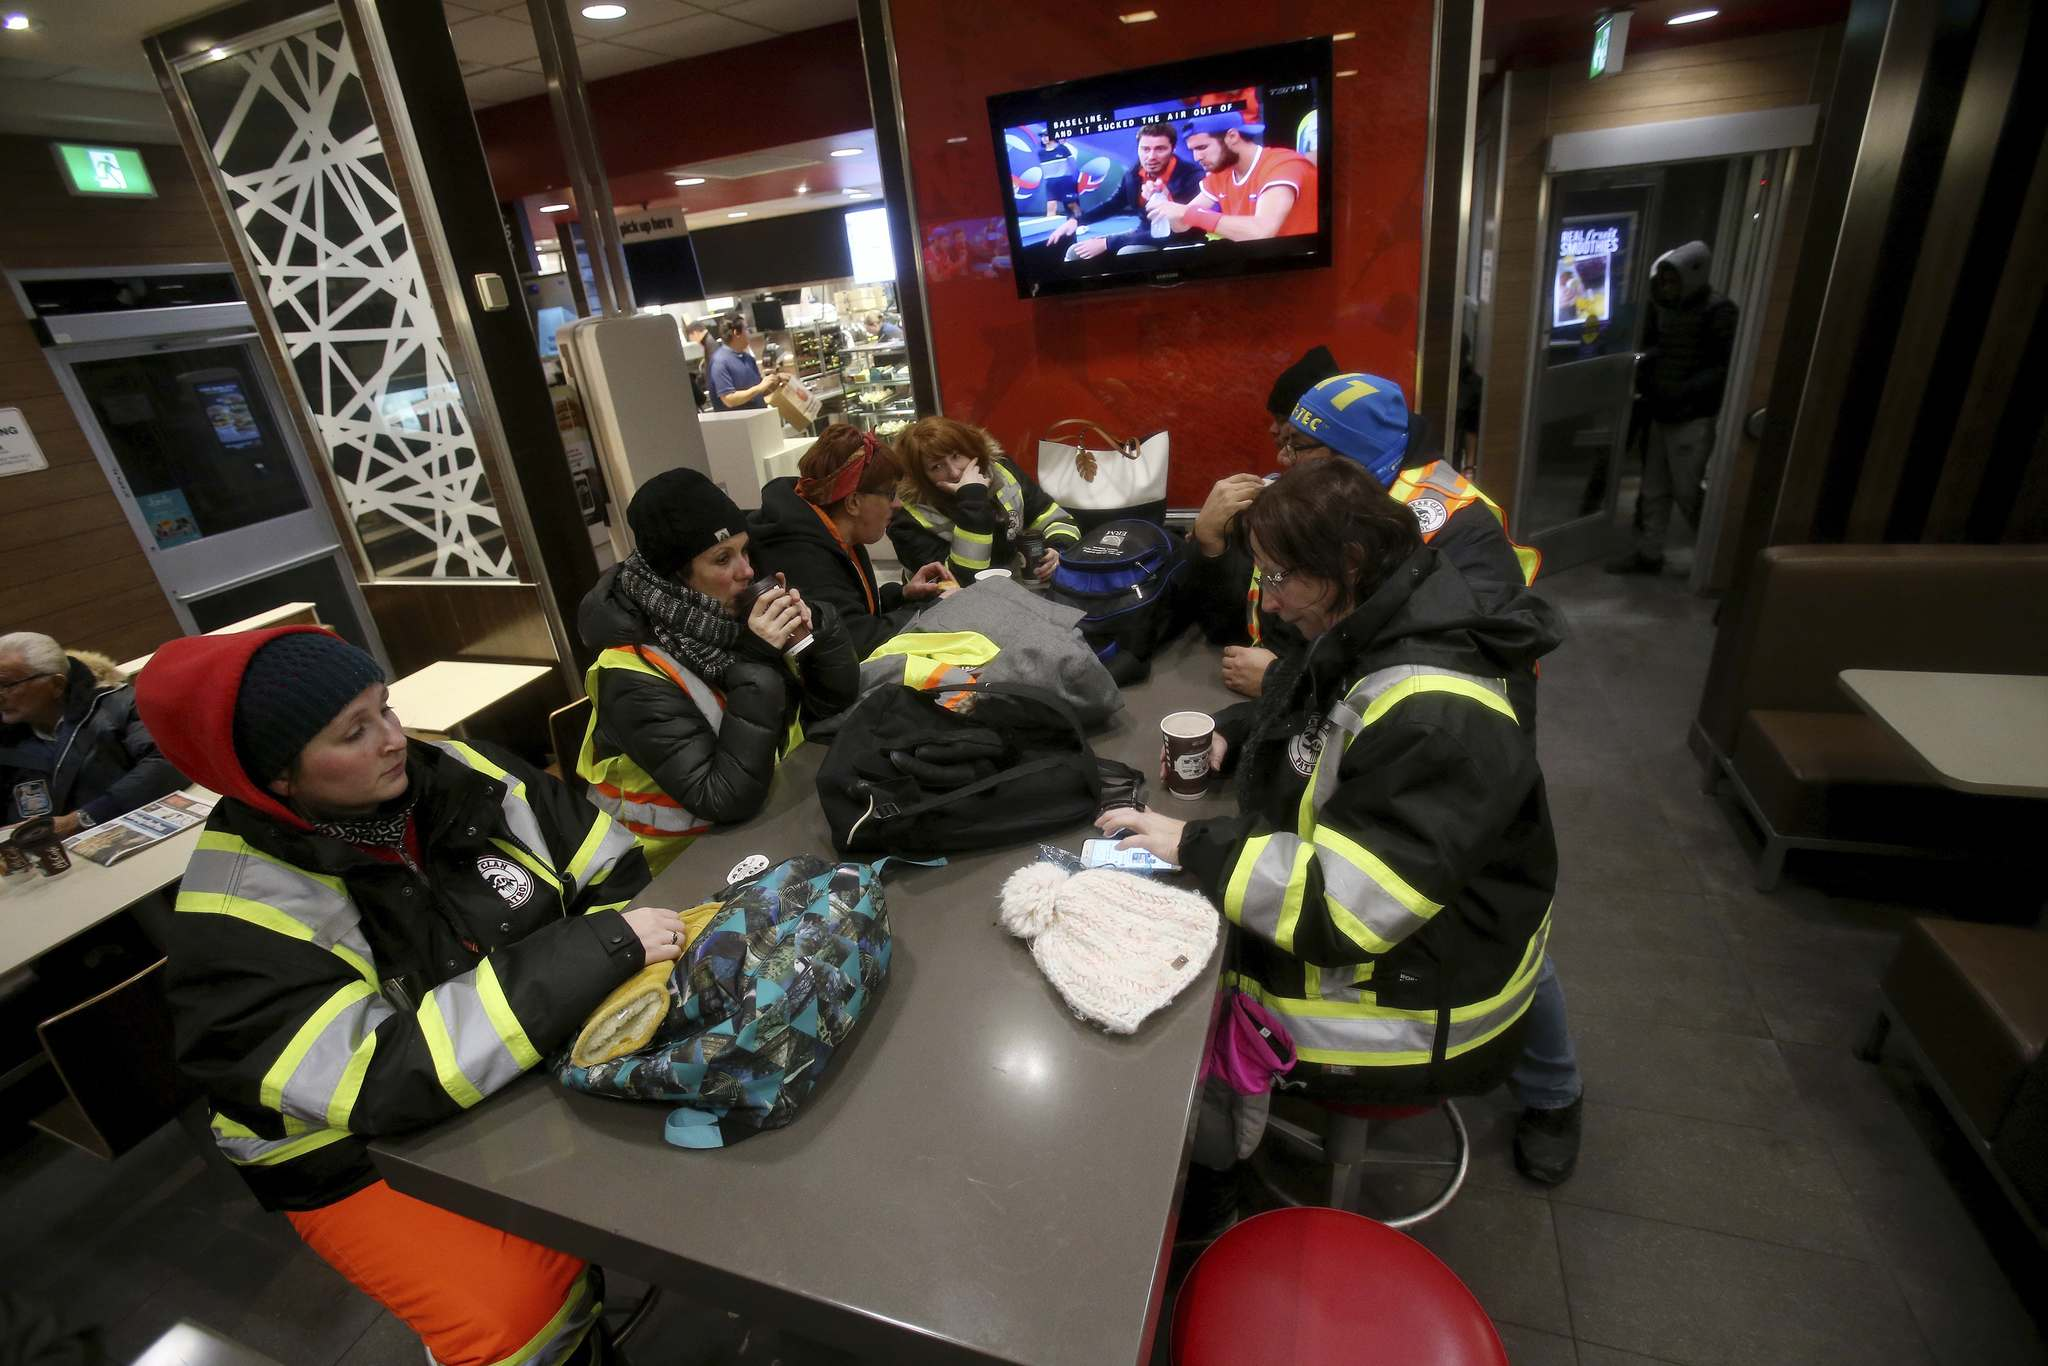 SHANNON VANRAES / WINNIPEG FREE PRESS</p><p>With temperatures reaching into the -30s, volunteers with the West Broadway Bear Clan Partol head into a McDonald's restaurant to warm up at the halfway point of a three-hour-long patrol.</p>